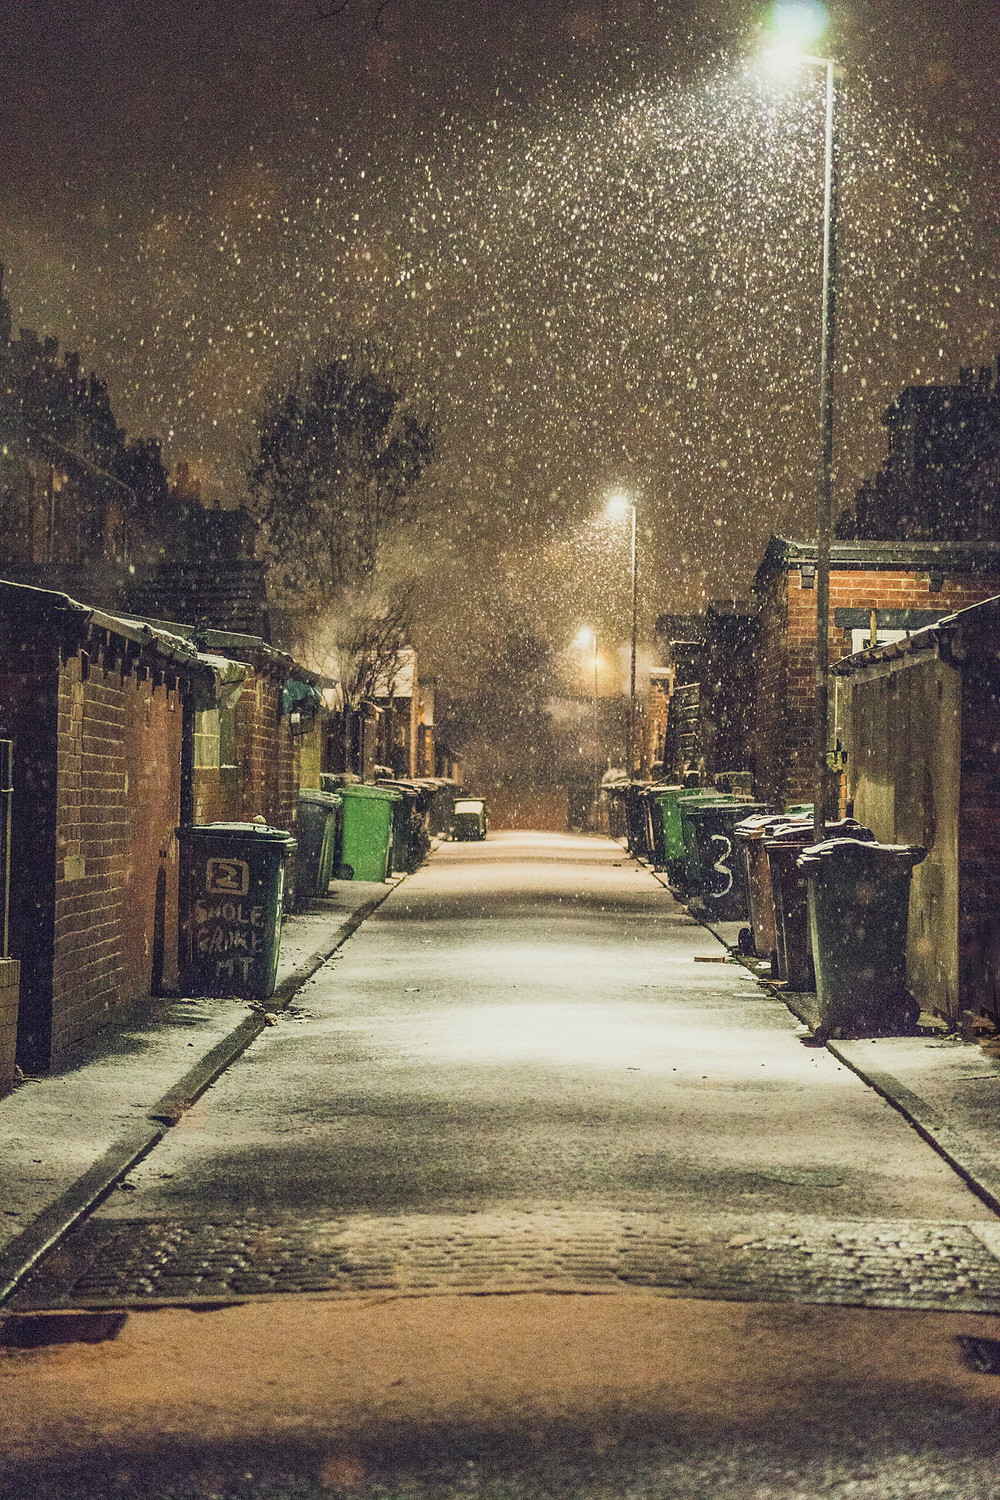 An Alleyway in the snow